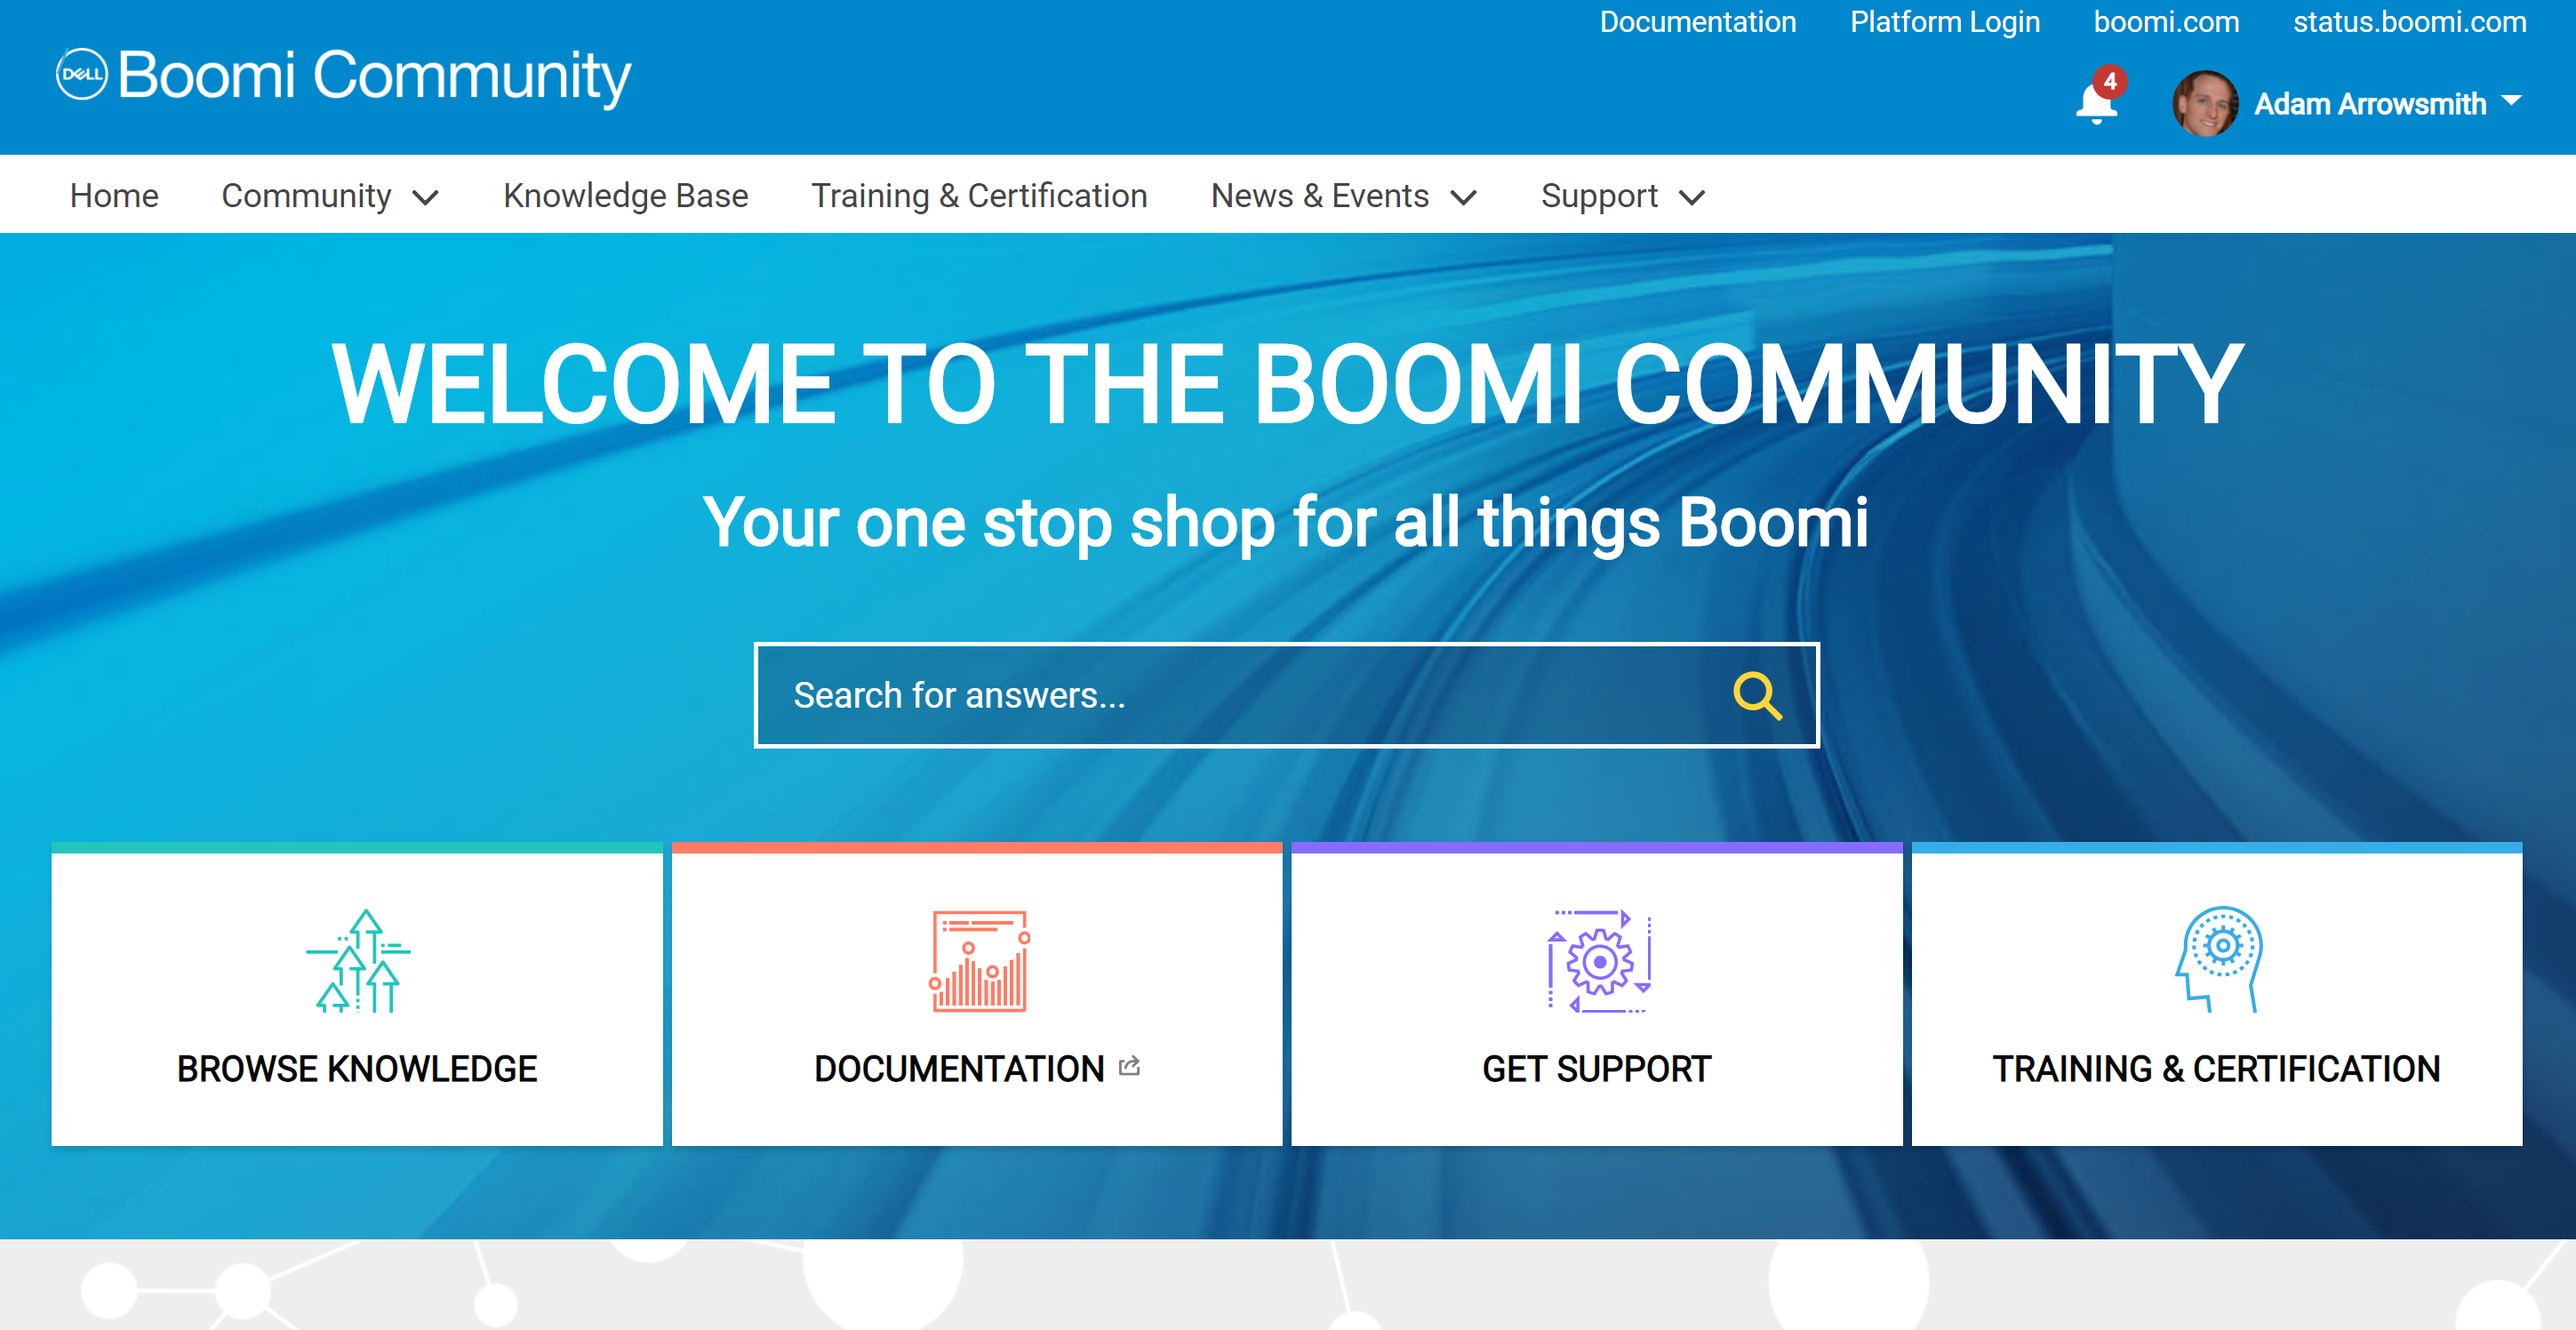 Article: Dell Boomi Help and Support Guide - Boomi Community